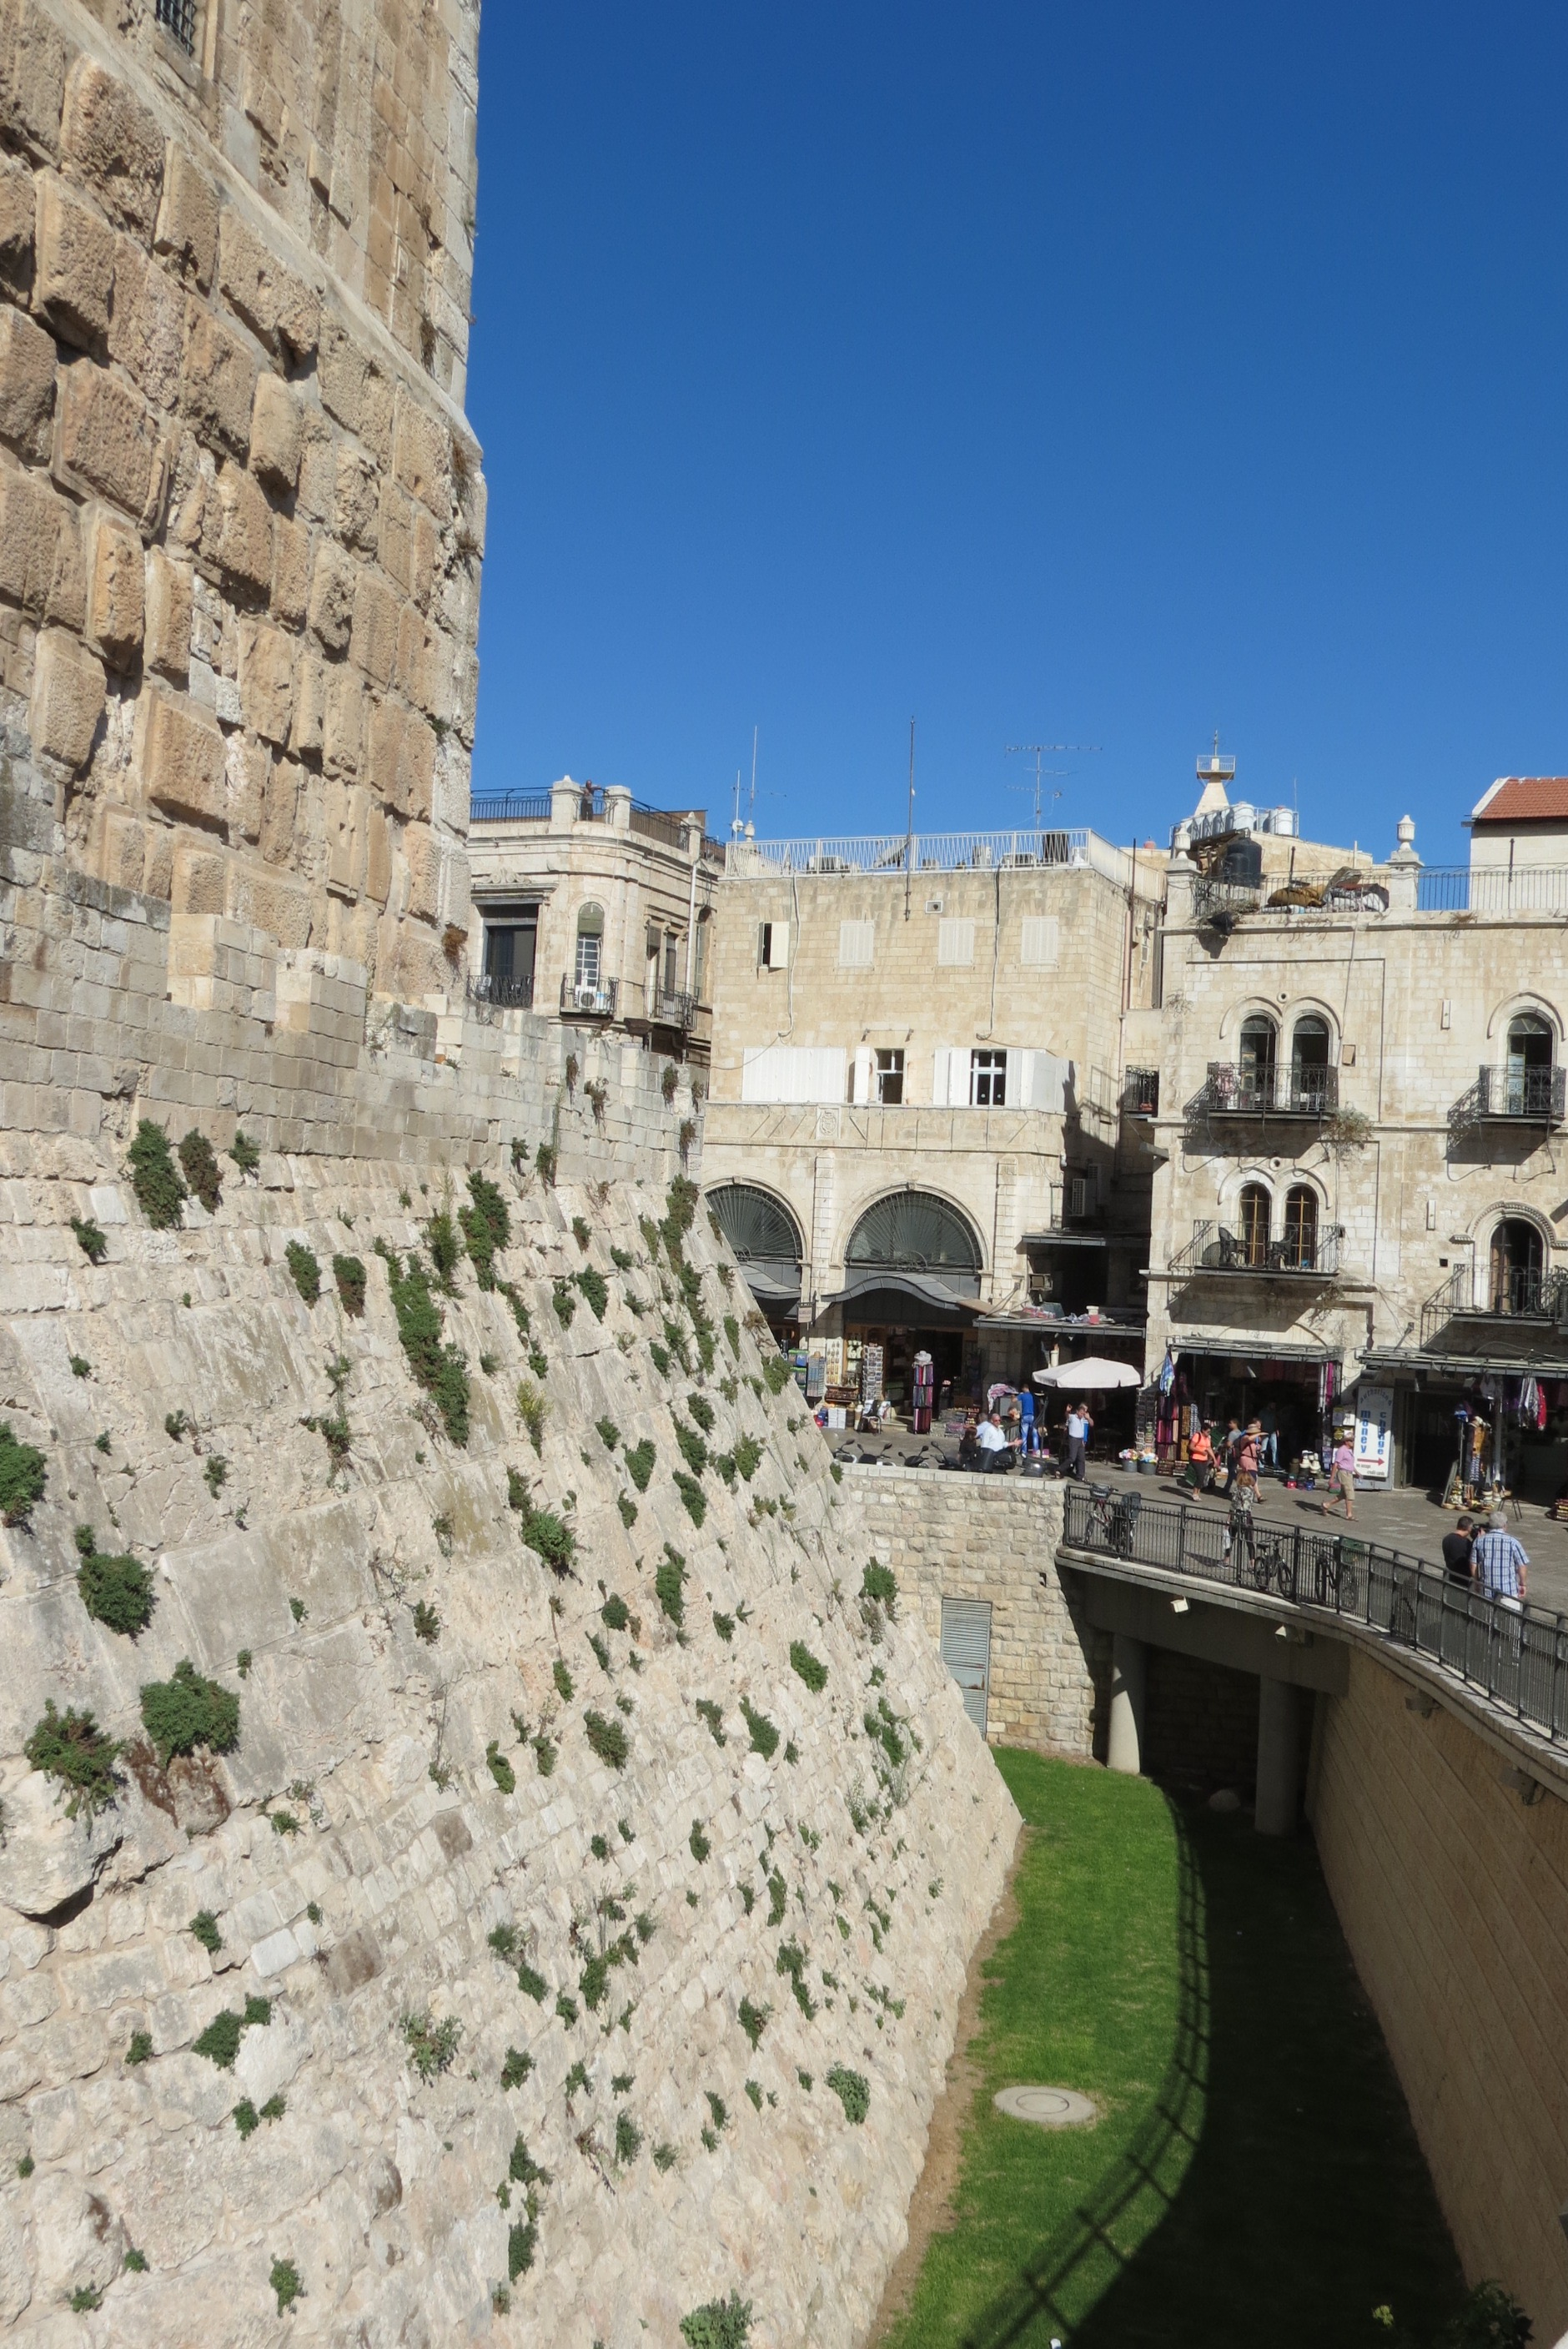 David's Citadel from Jaffa Gate